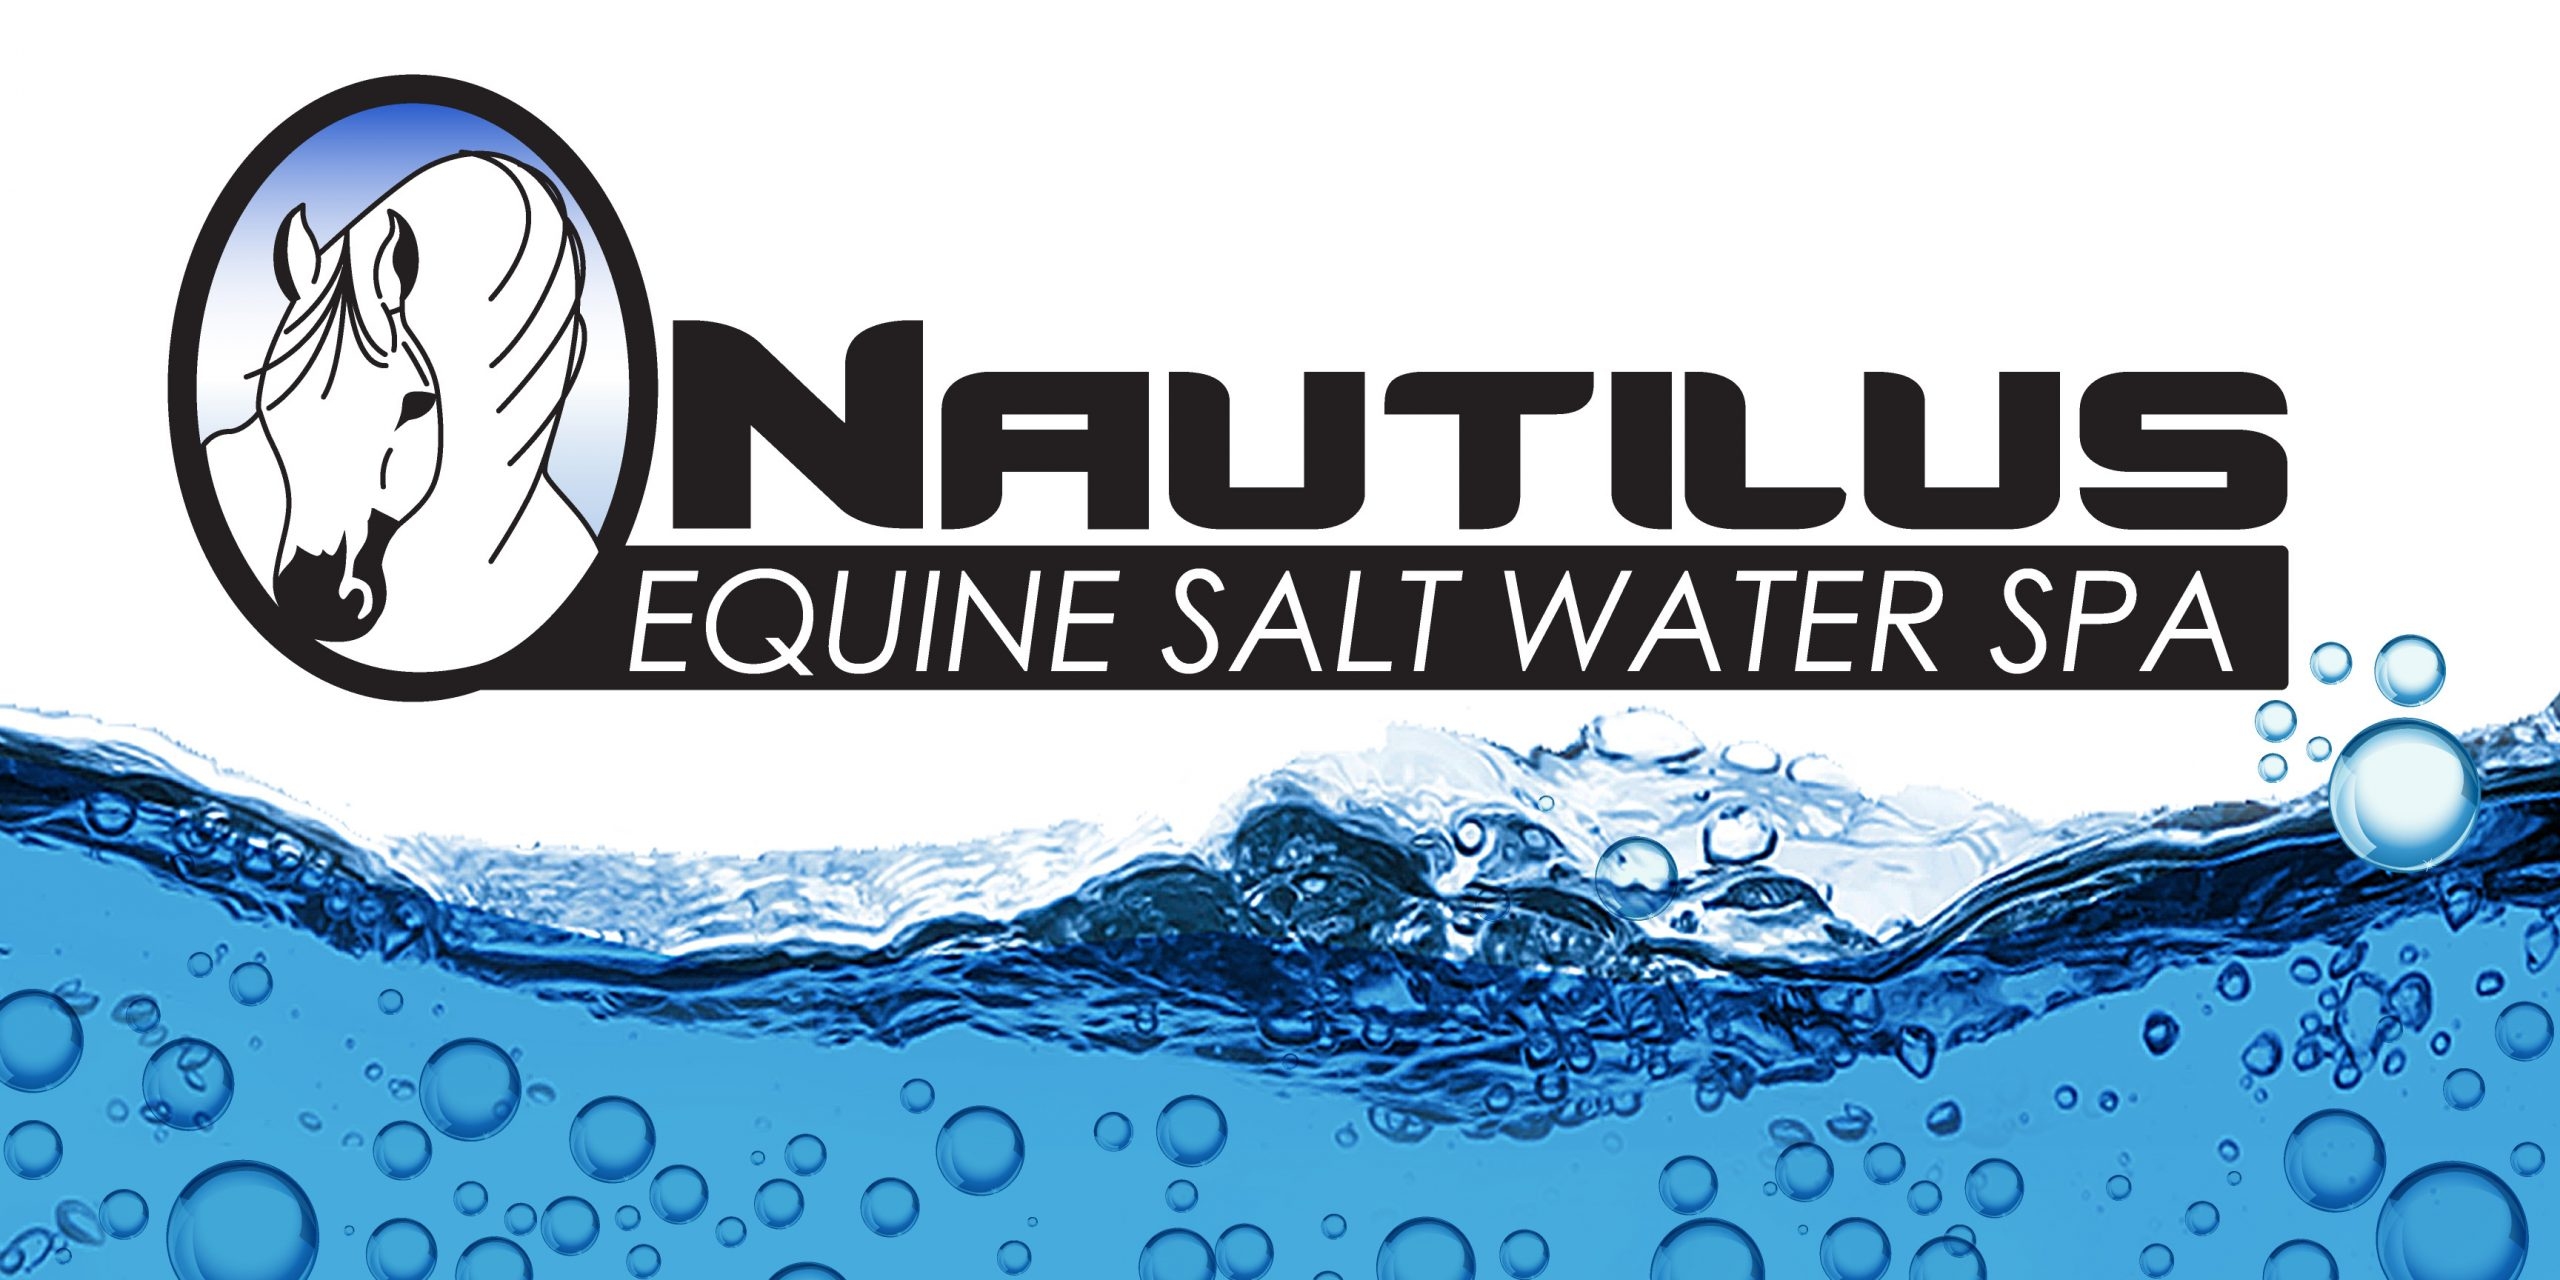 Nautilus logo and water